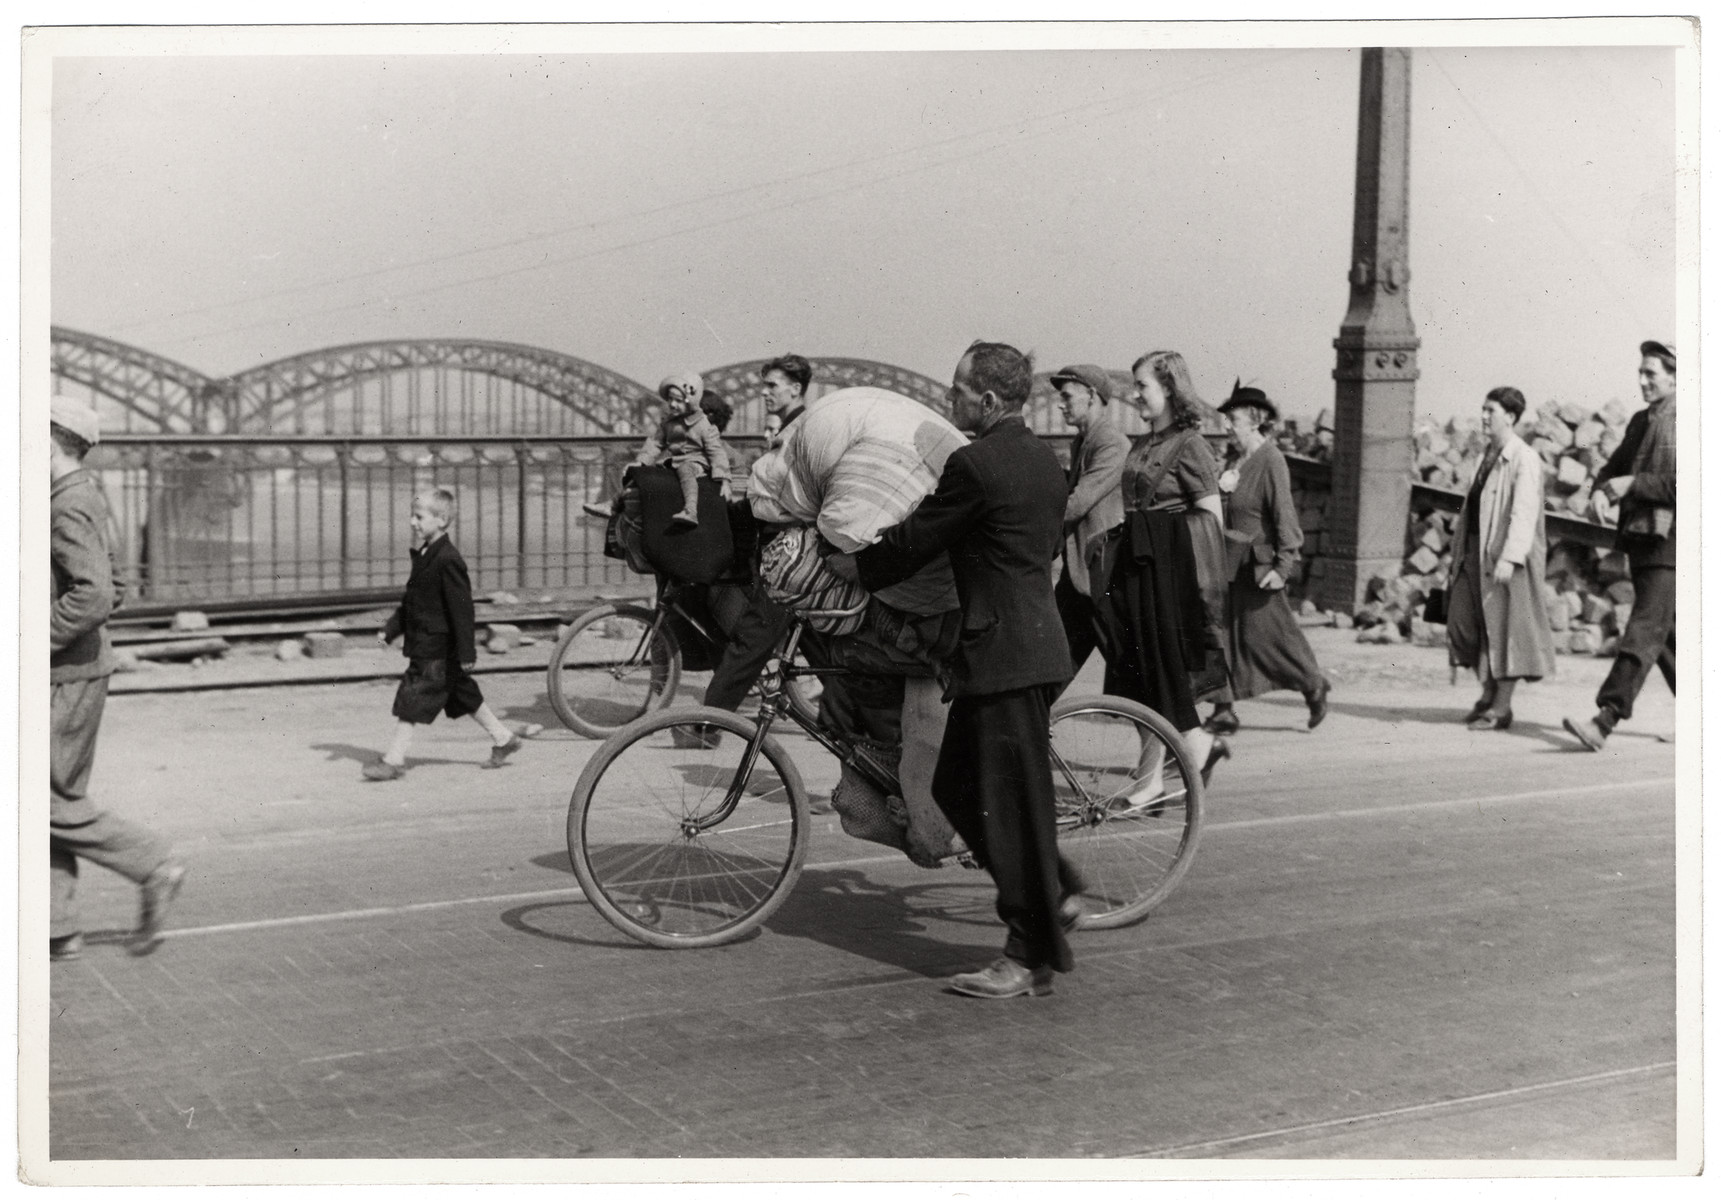 Pedestrians cross a bridge during the siege of Warsaw; one Polish man in the center carries bedding on a bicycle.